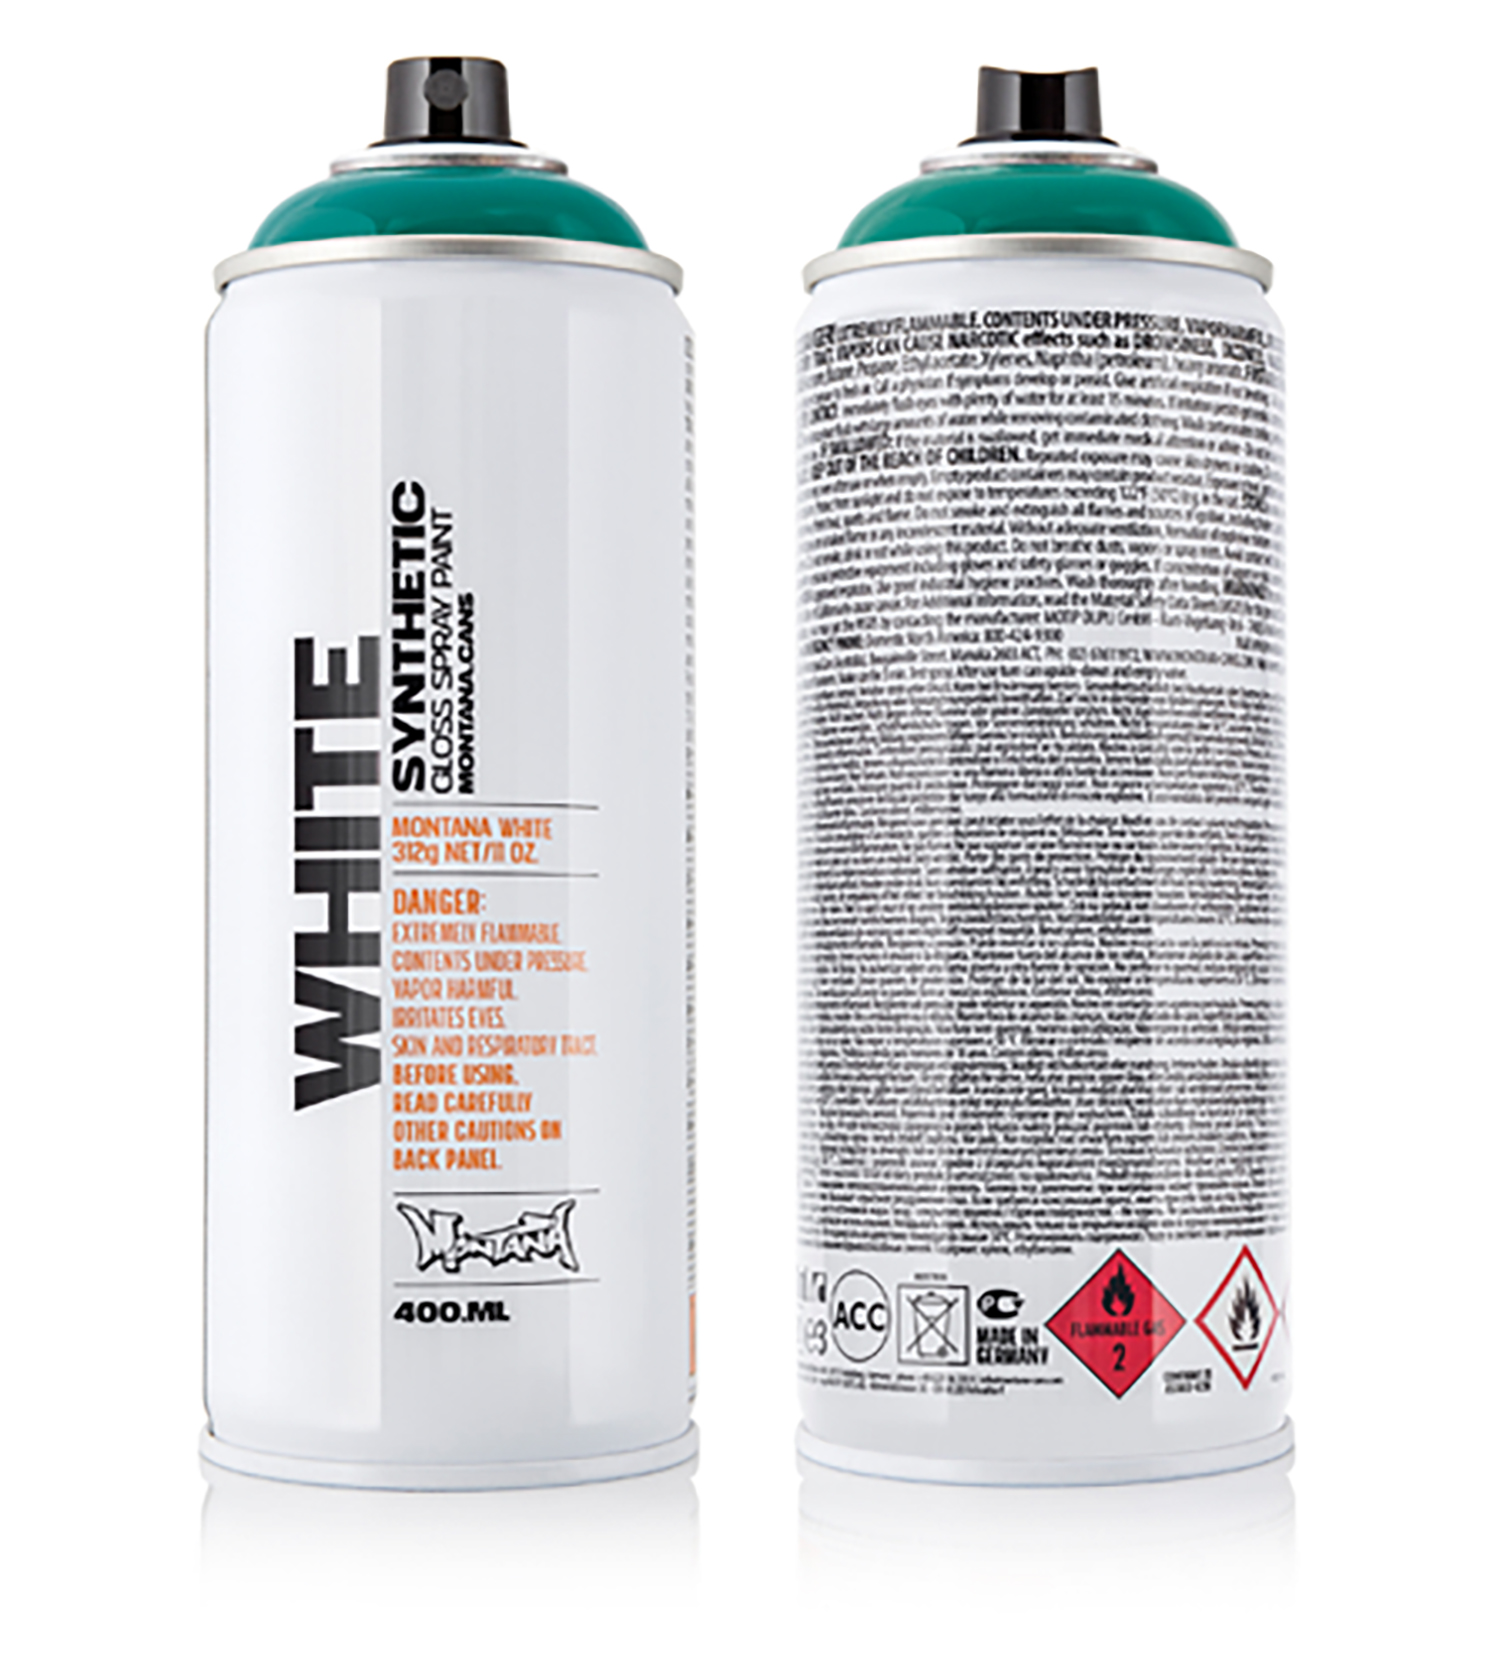 MONTANA-WHITE-SPRAY-400ML-6270